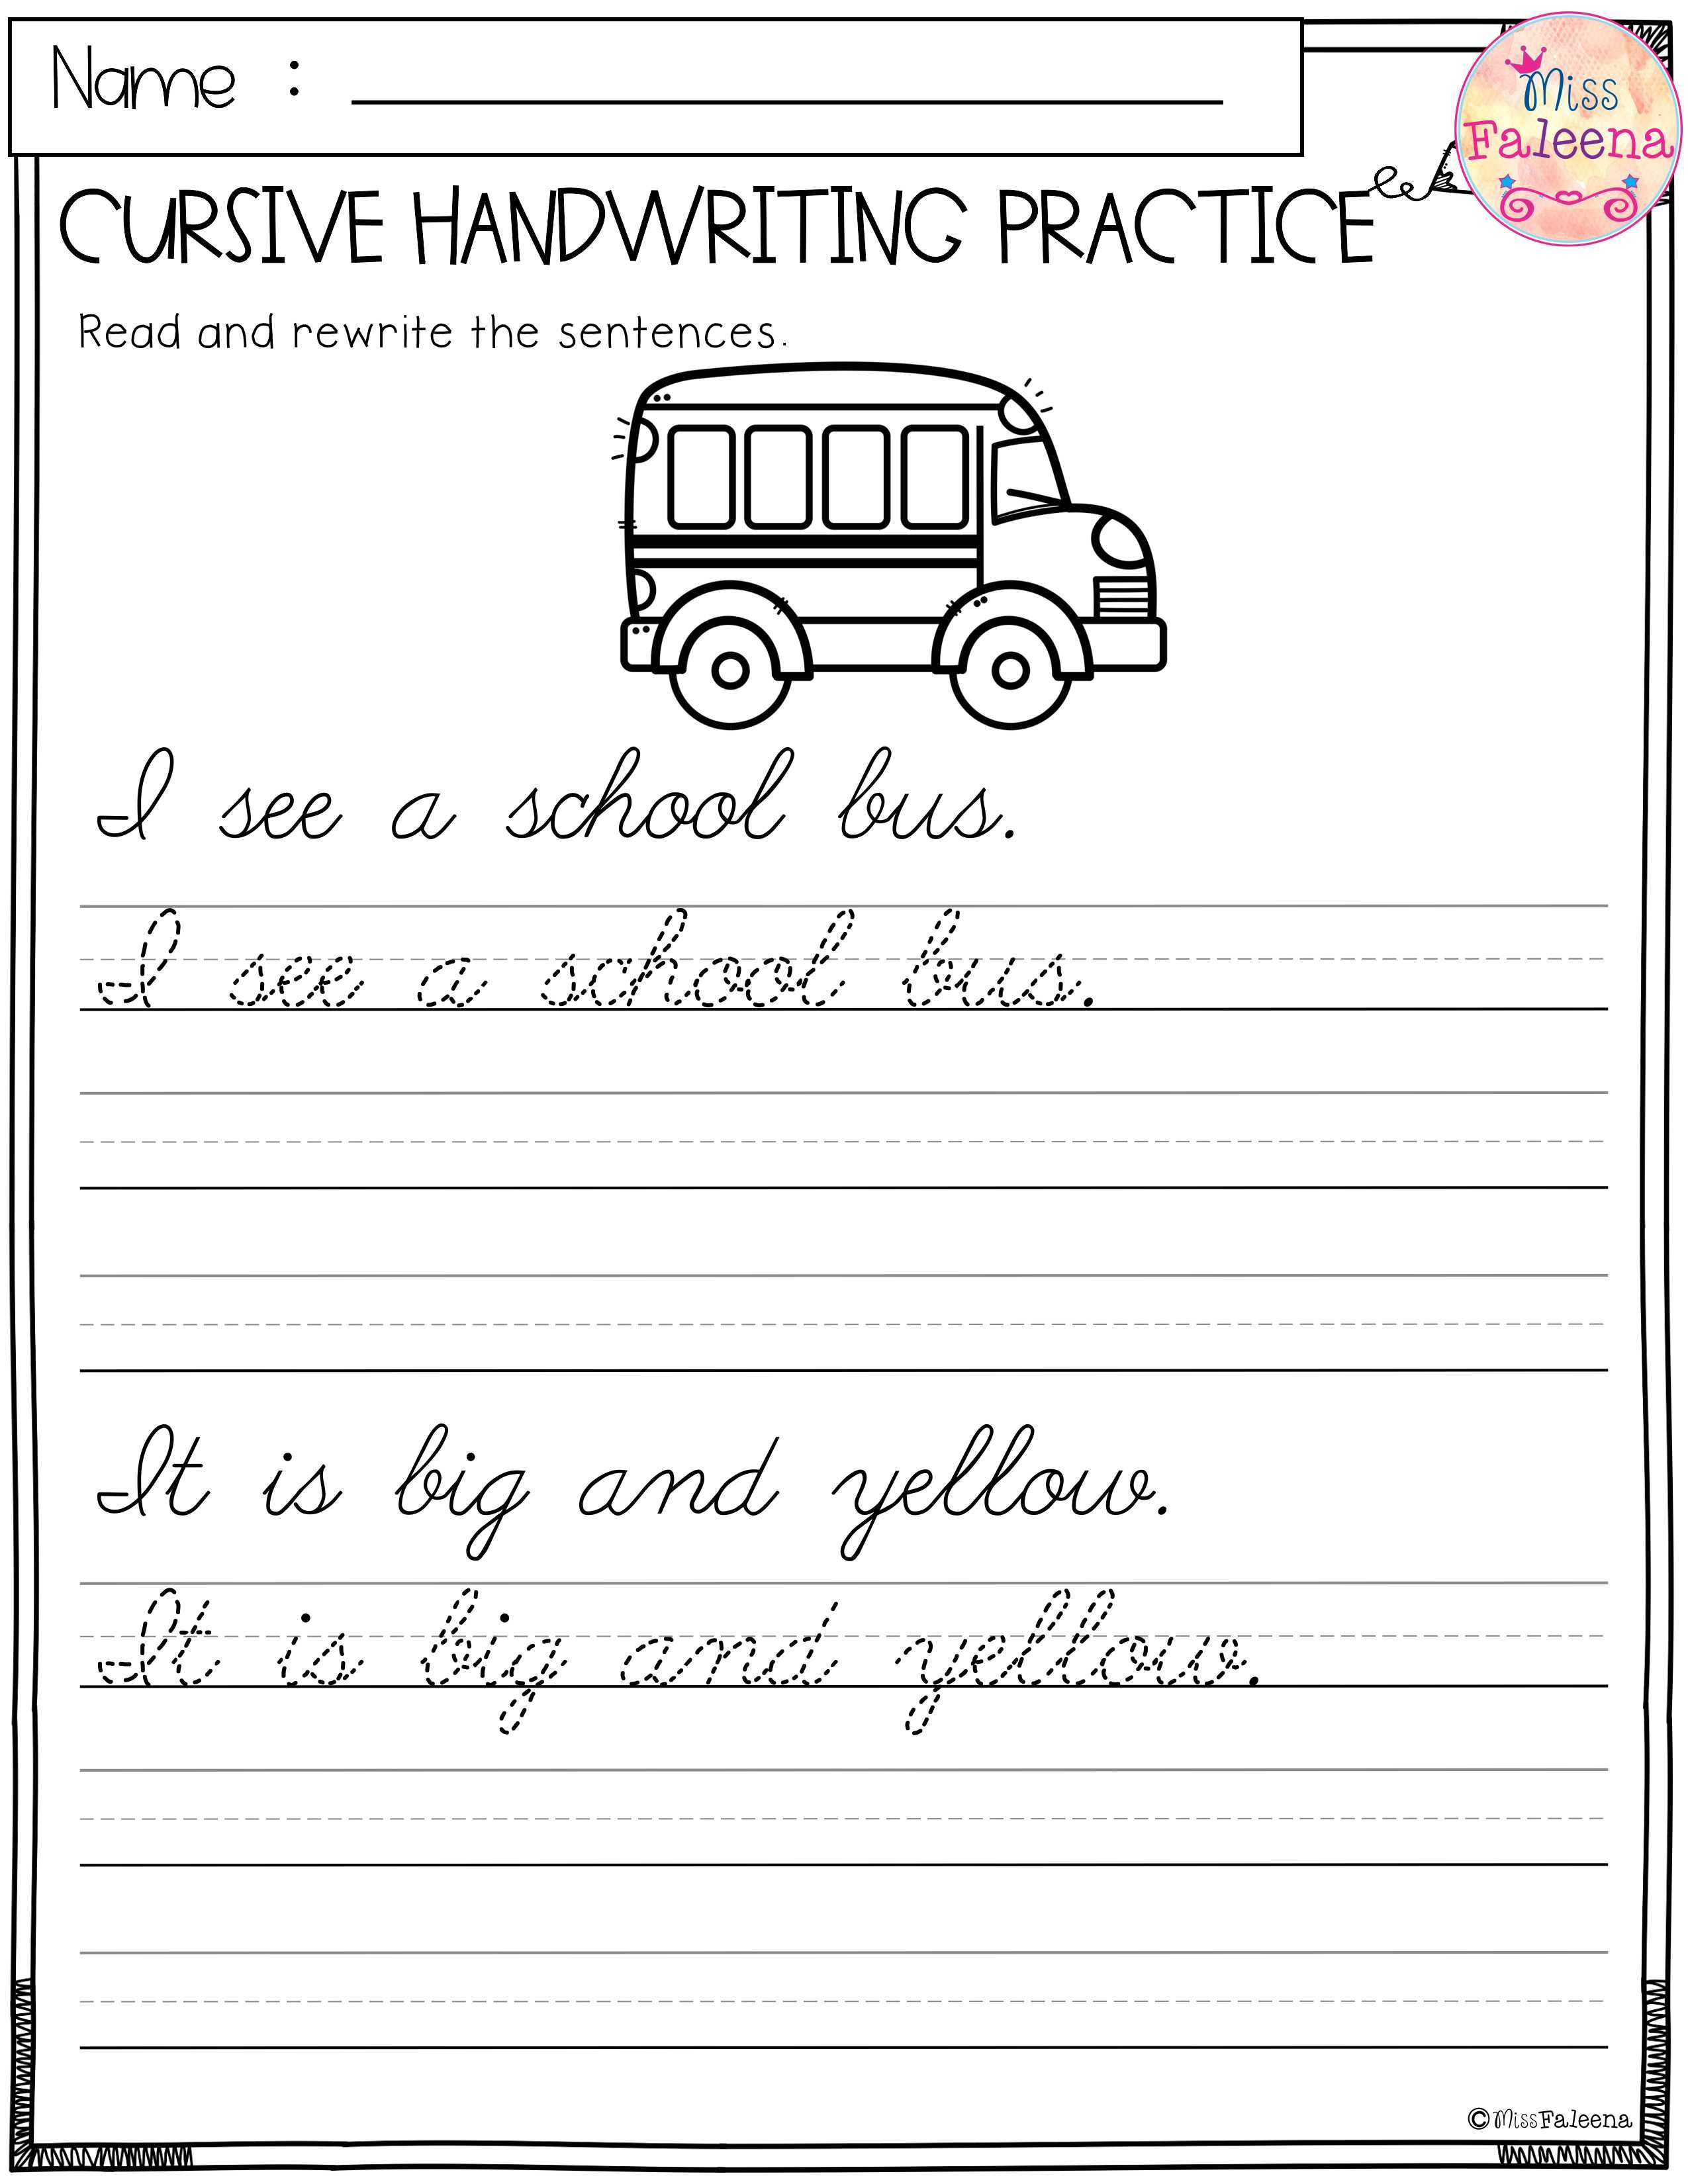 hight resolution of This product has 25 pages of handwriting worksheets. This product will  teach children rea…   Cursive handwriting practice